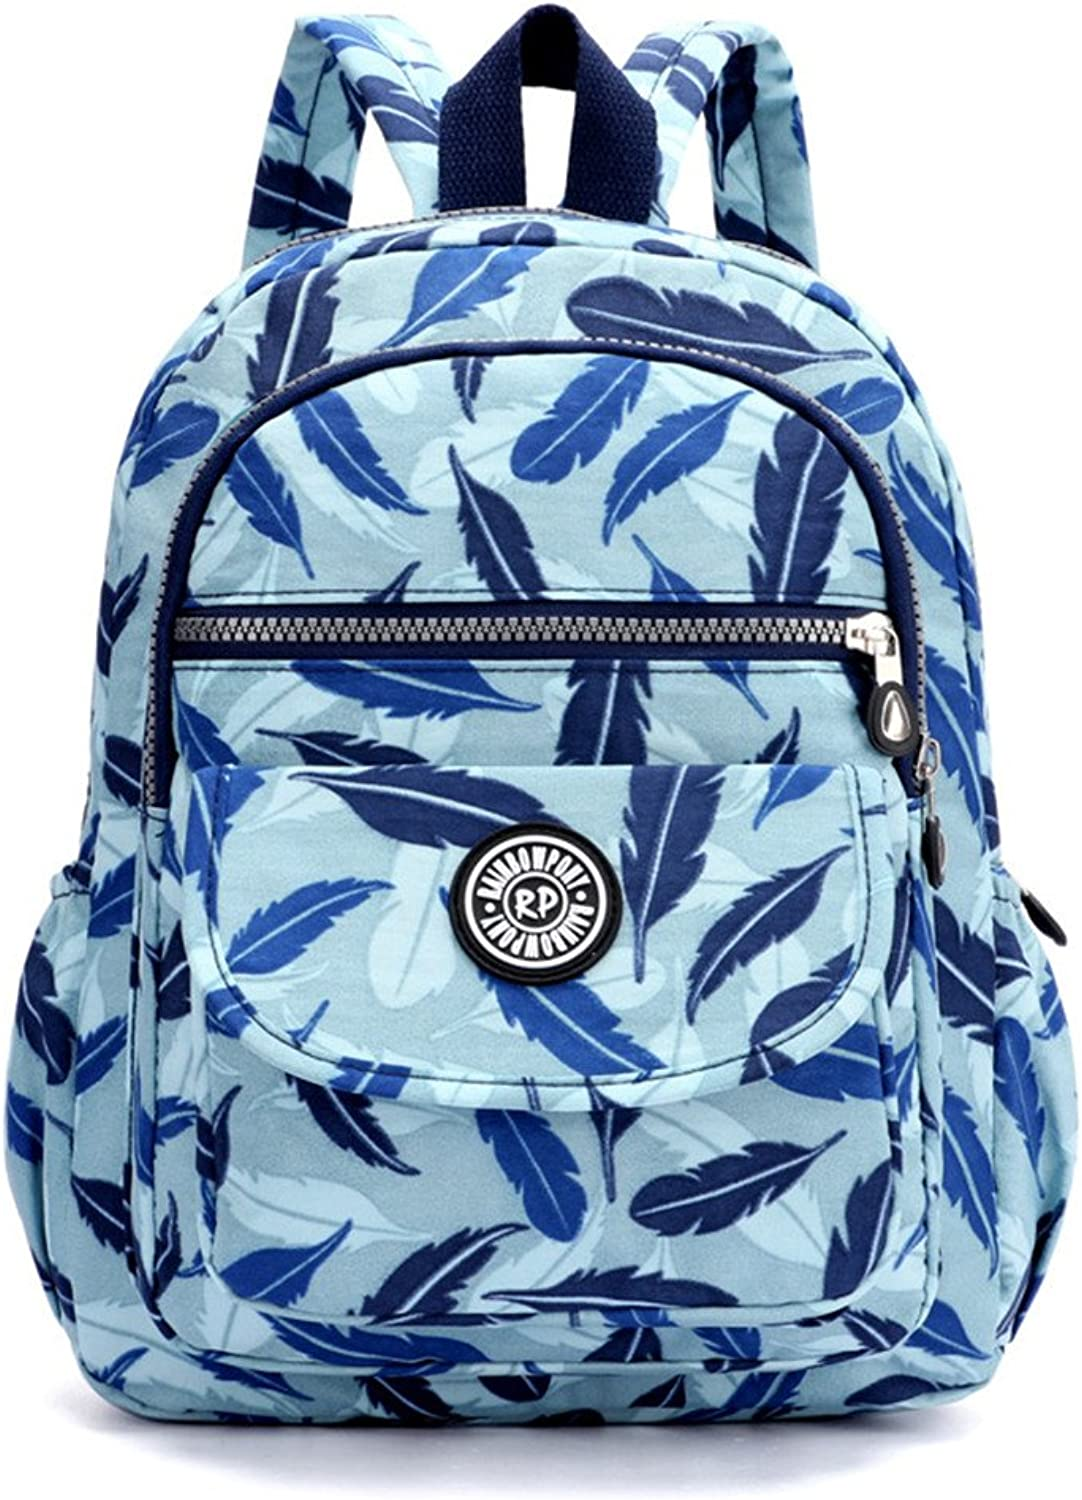 Zhrui Backpack Woman Travel Waterproof Backpack Girl Casual Top Sport (color   bluee Feather, Size   One Size)